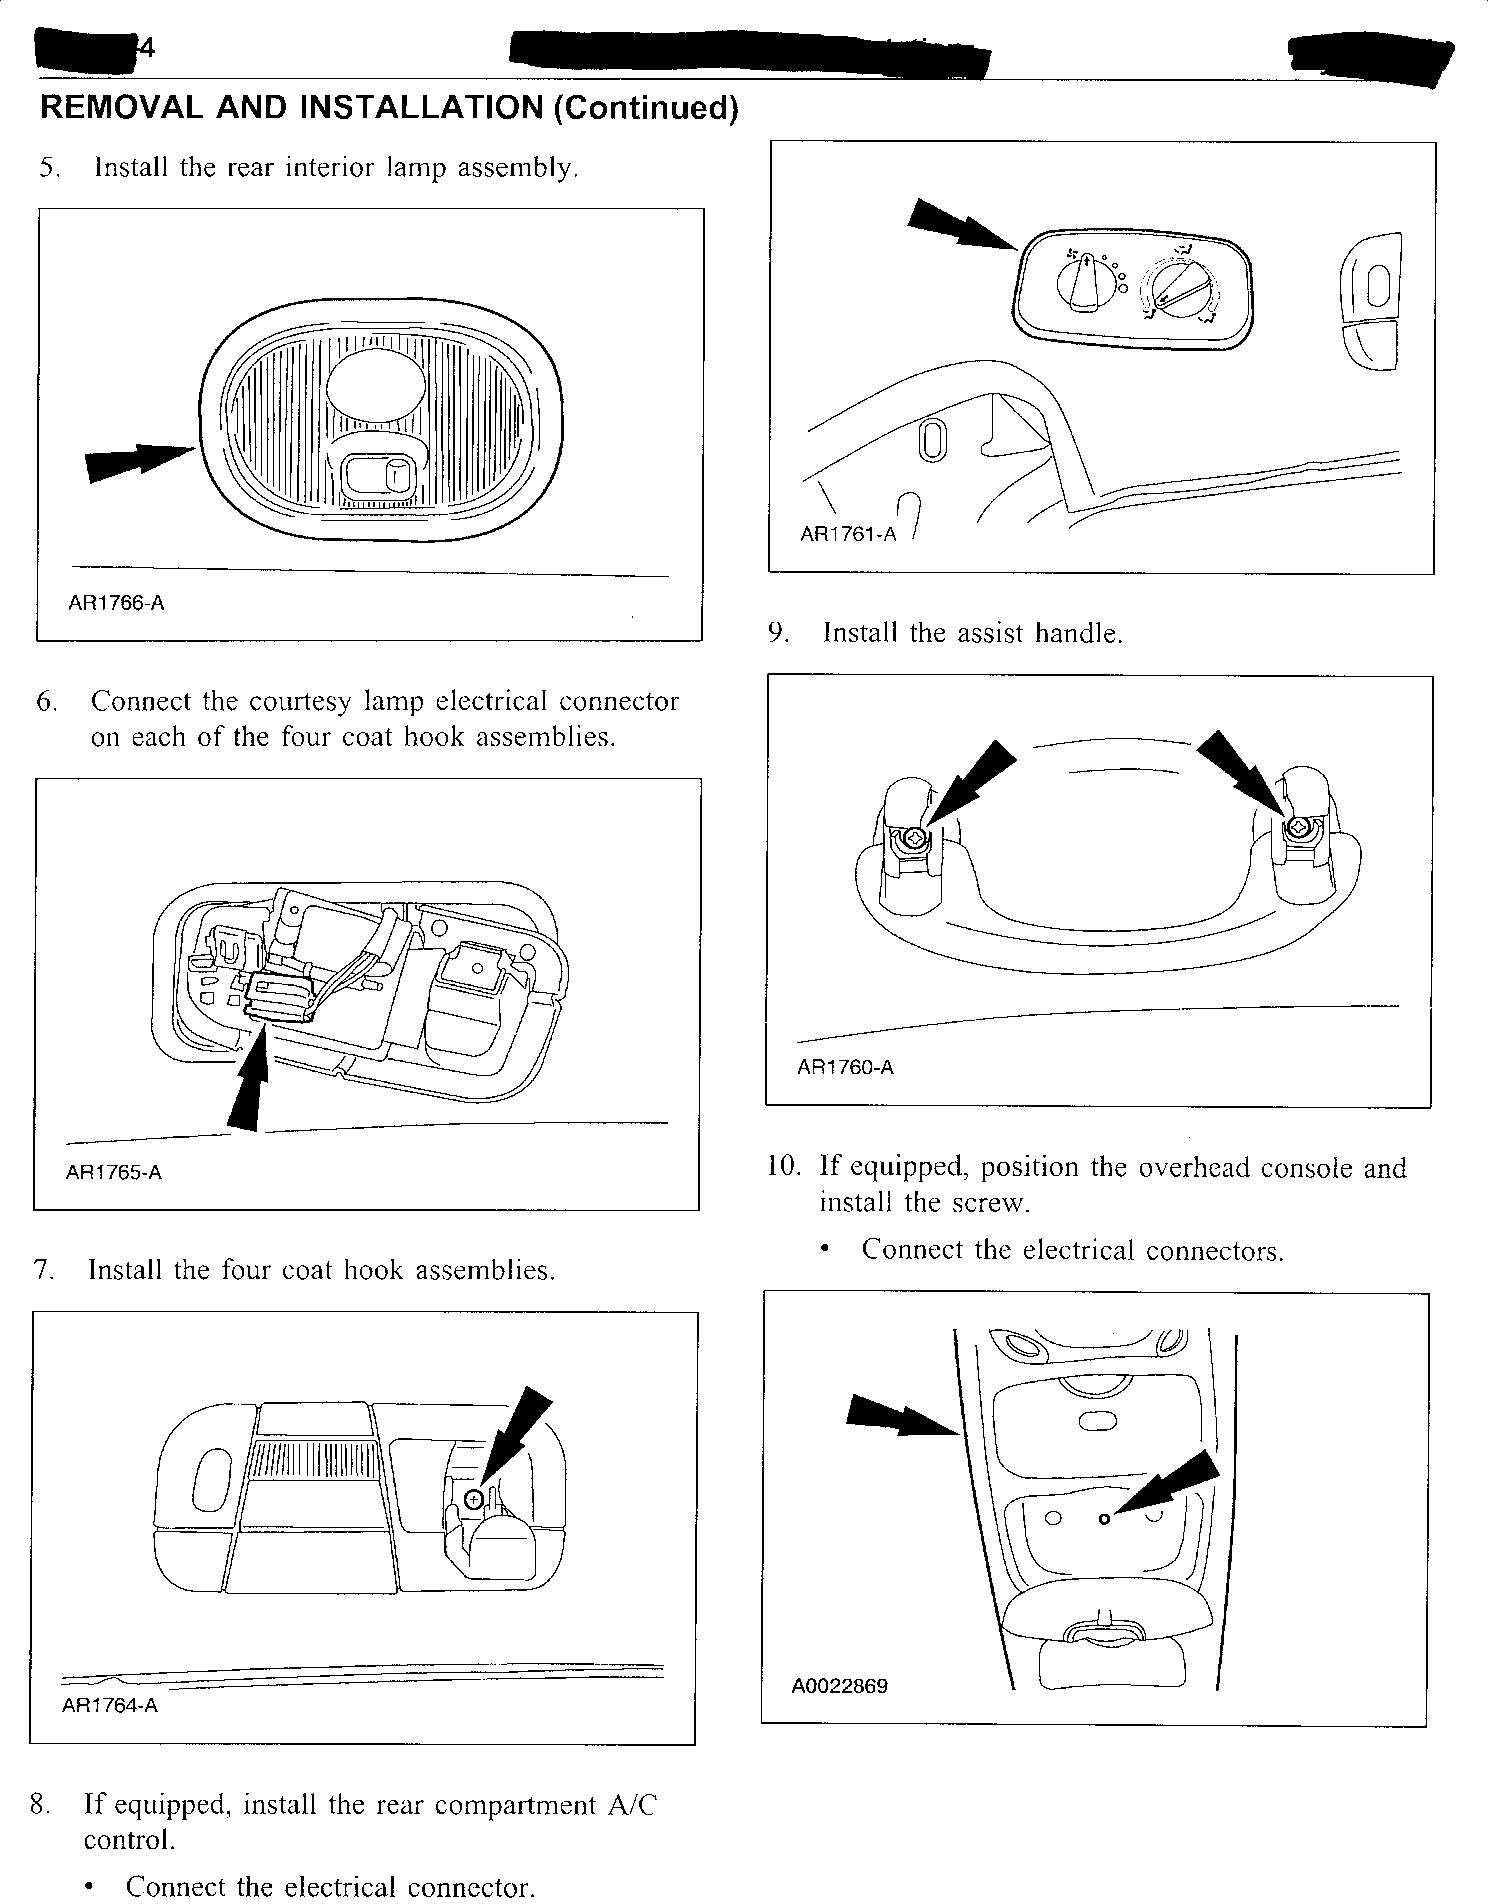 I Bought A Used 2003 Ford Windstar And Am Experiencing All Of The Electrical Problems Graphic